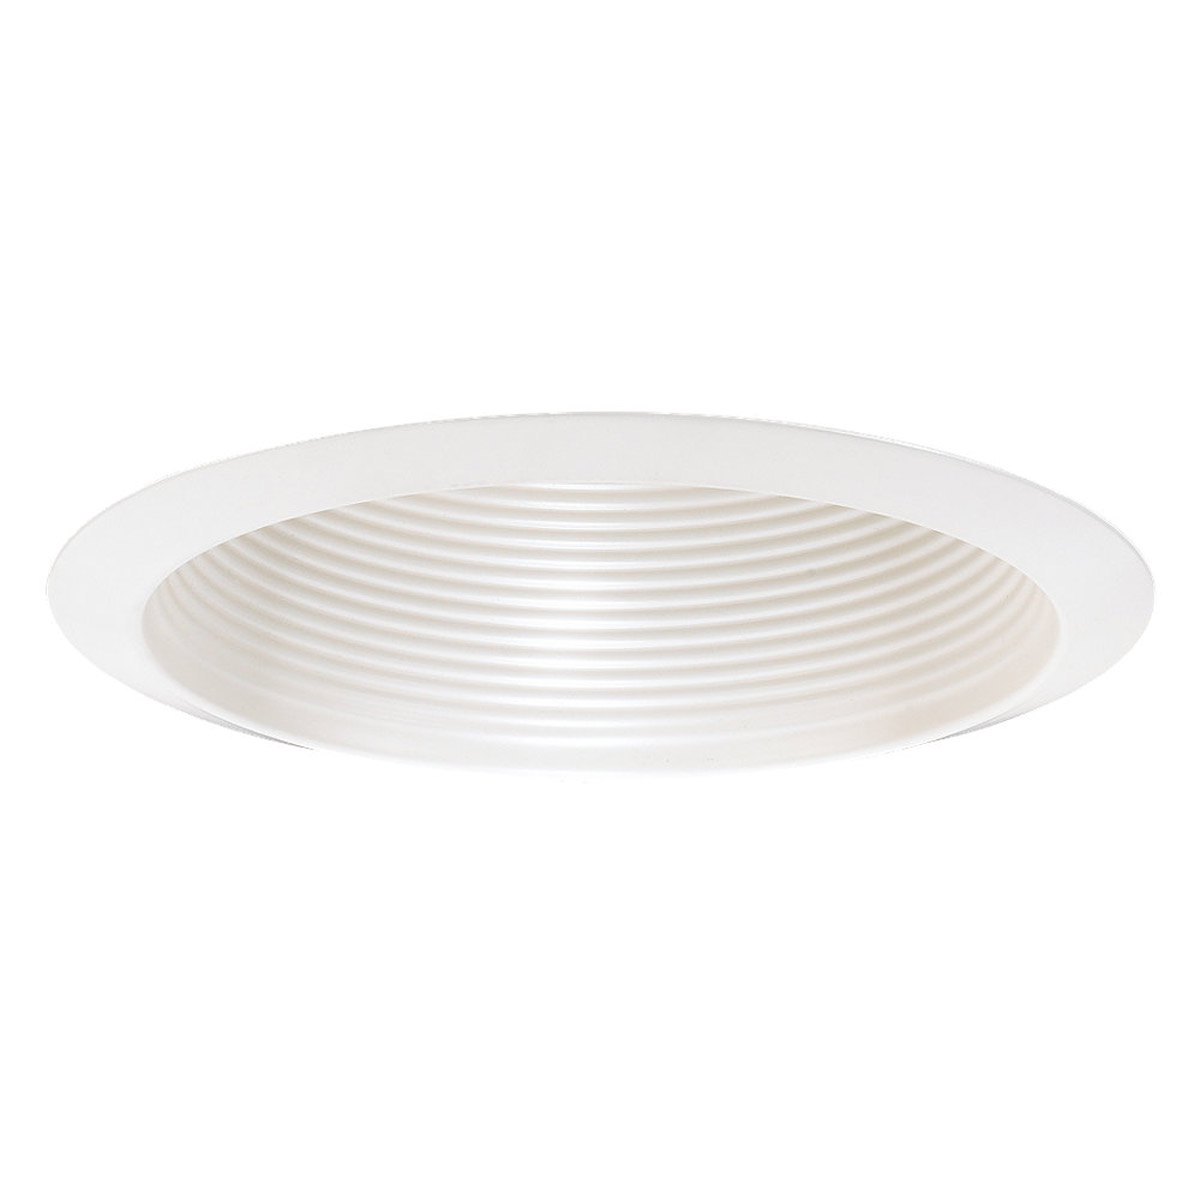 Sea Gull Lighting Signature Recessed Trim Only in White 1154AT-14